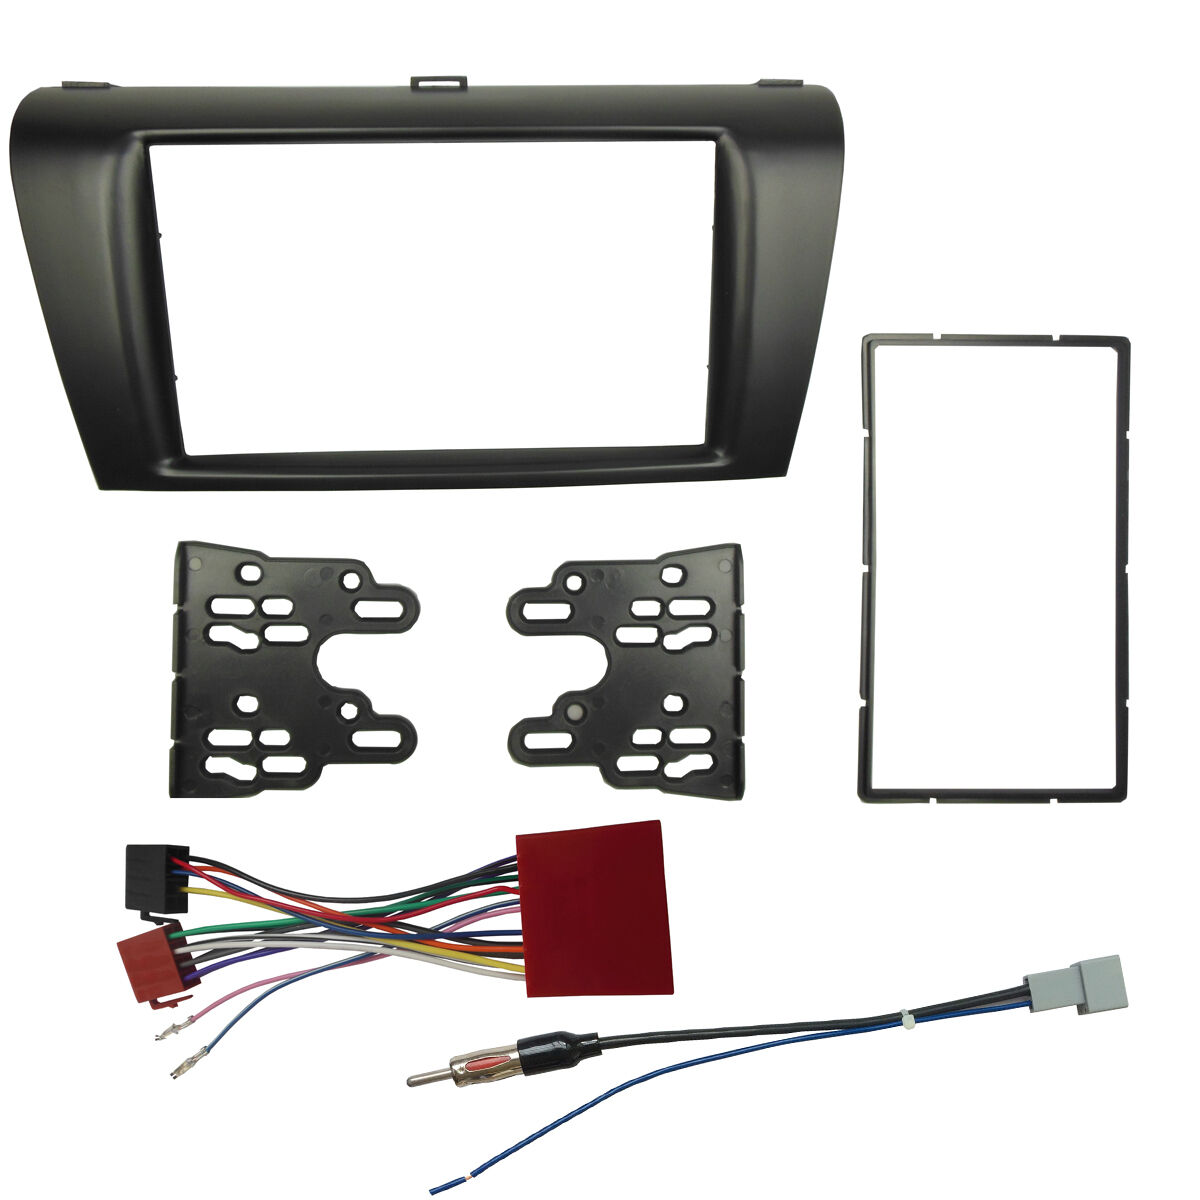 Double Din Radio Fascia For Mazda 3 Stereo Panel With Iso Wiring Harness Kit